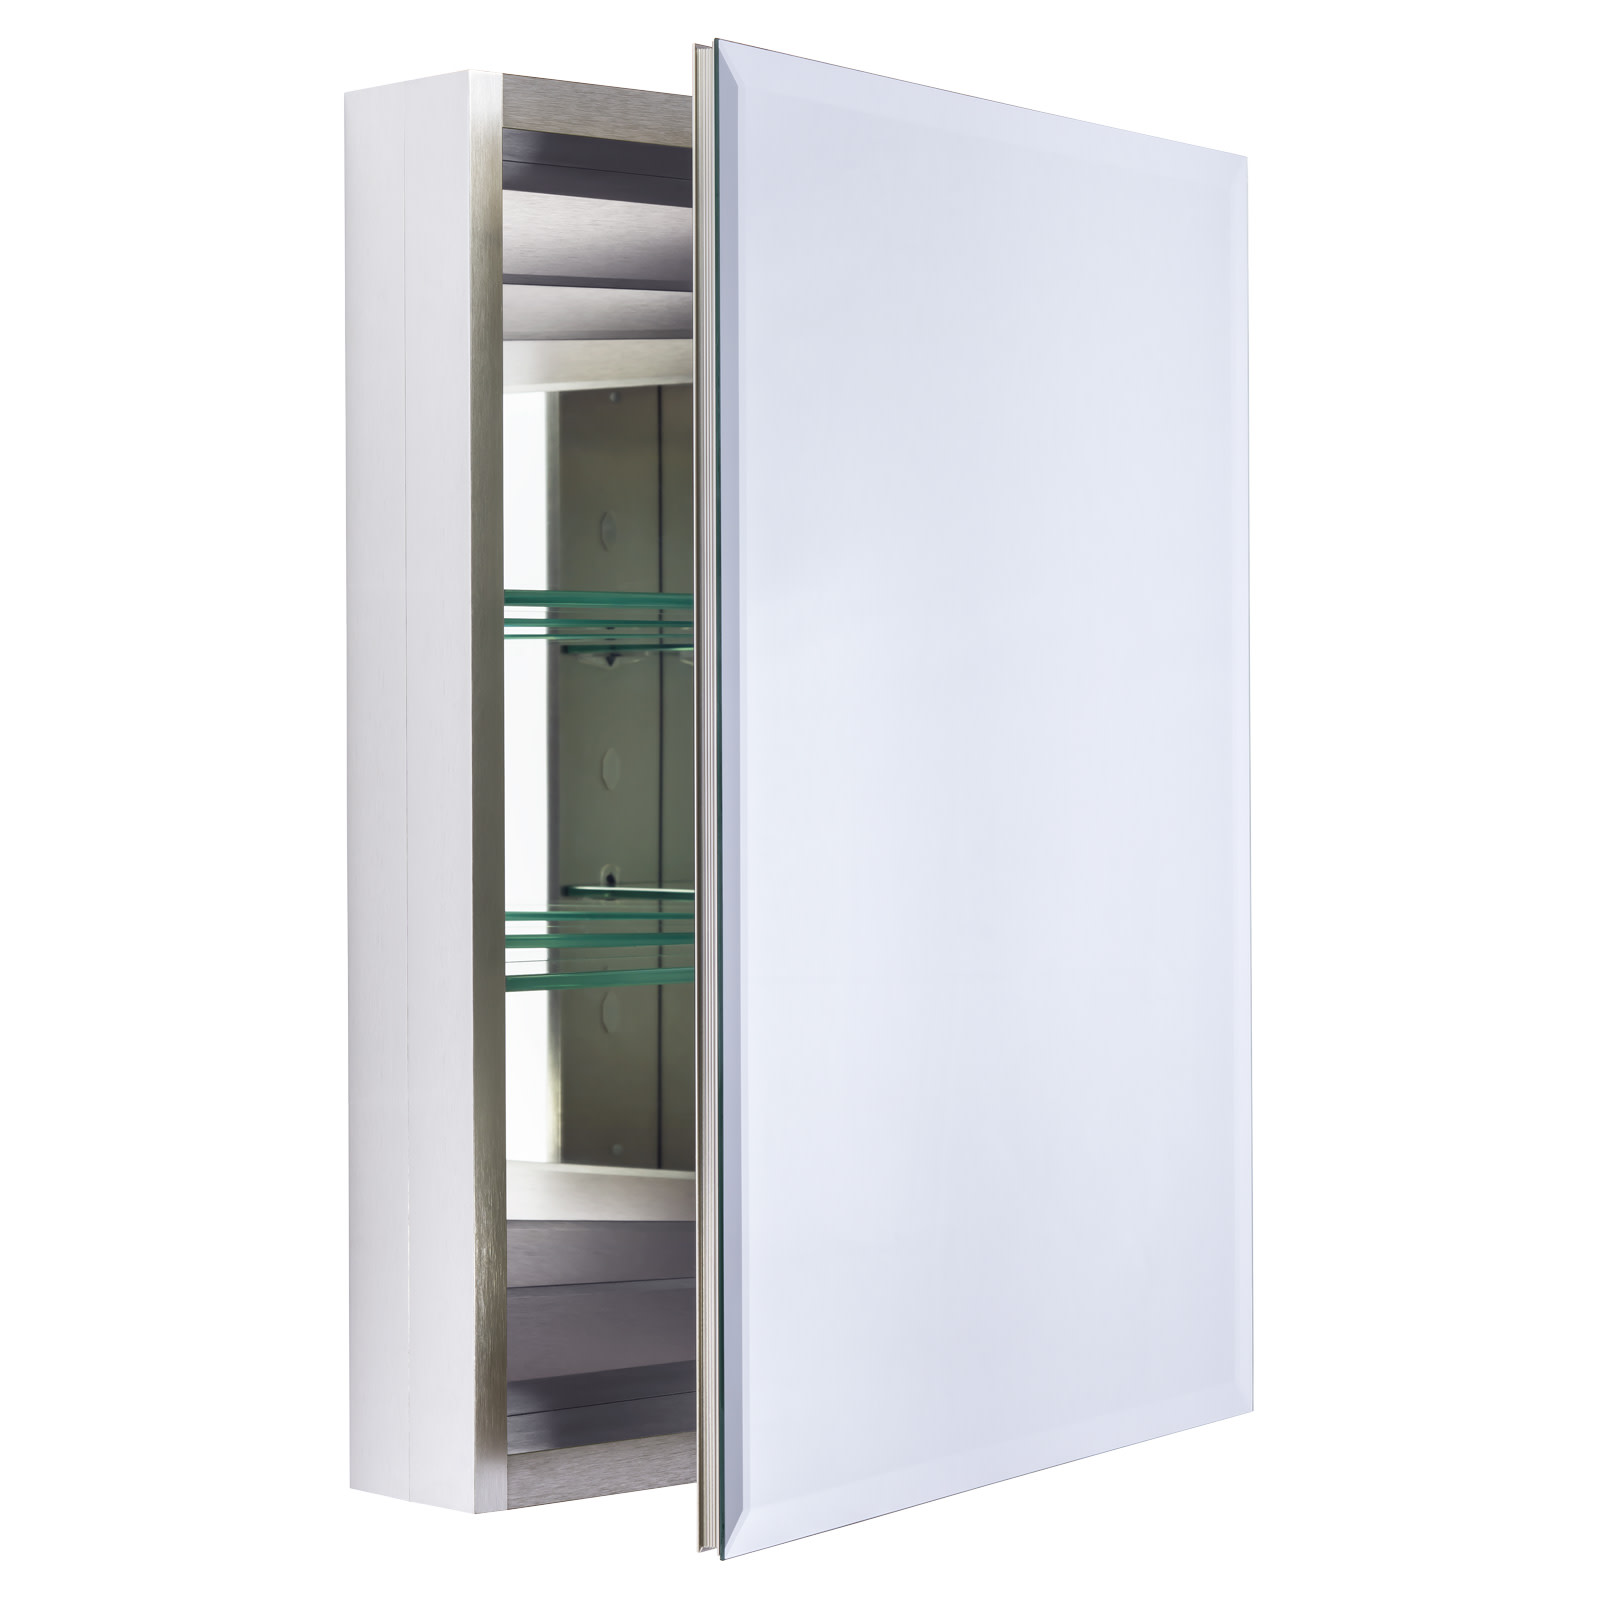 Details About Miseno Mbc2620 Dual Mount 26 X 20 Beveled Medicine Cabinet Surface Or Rec